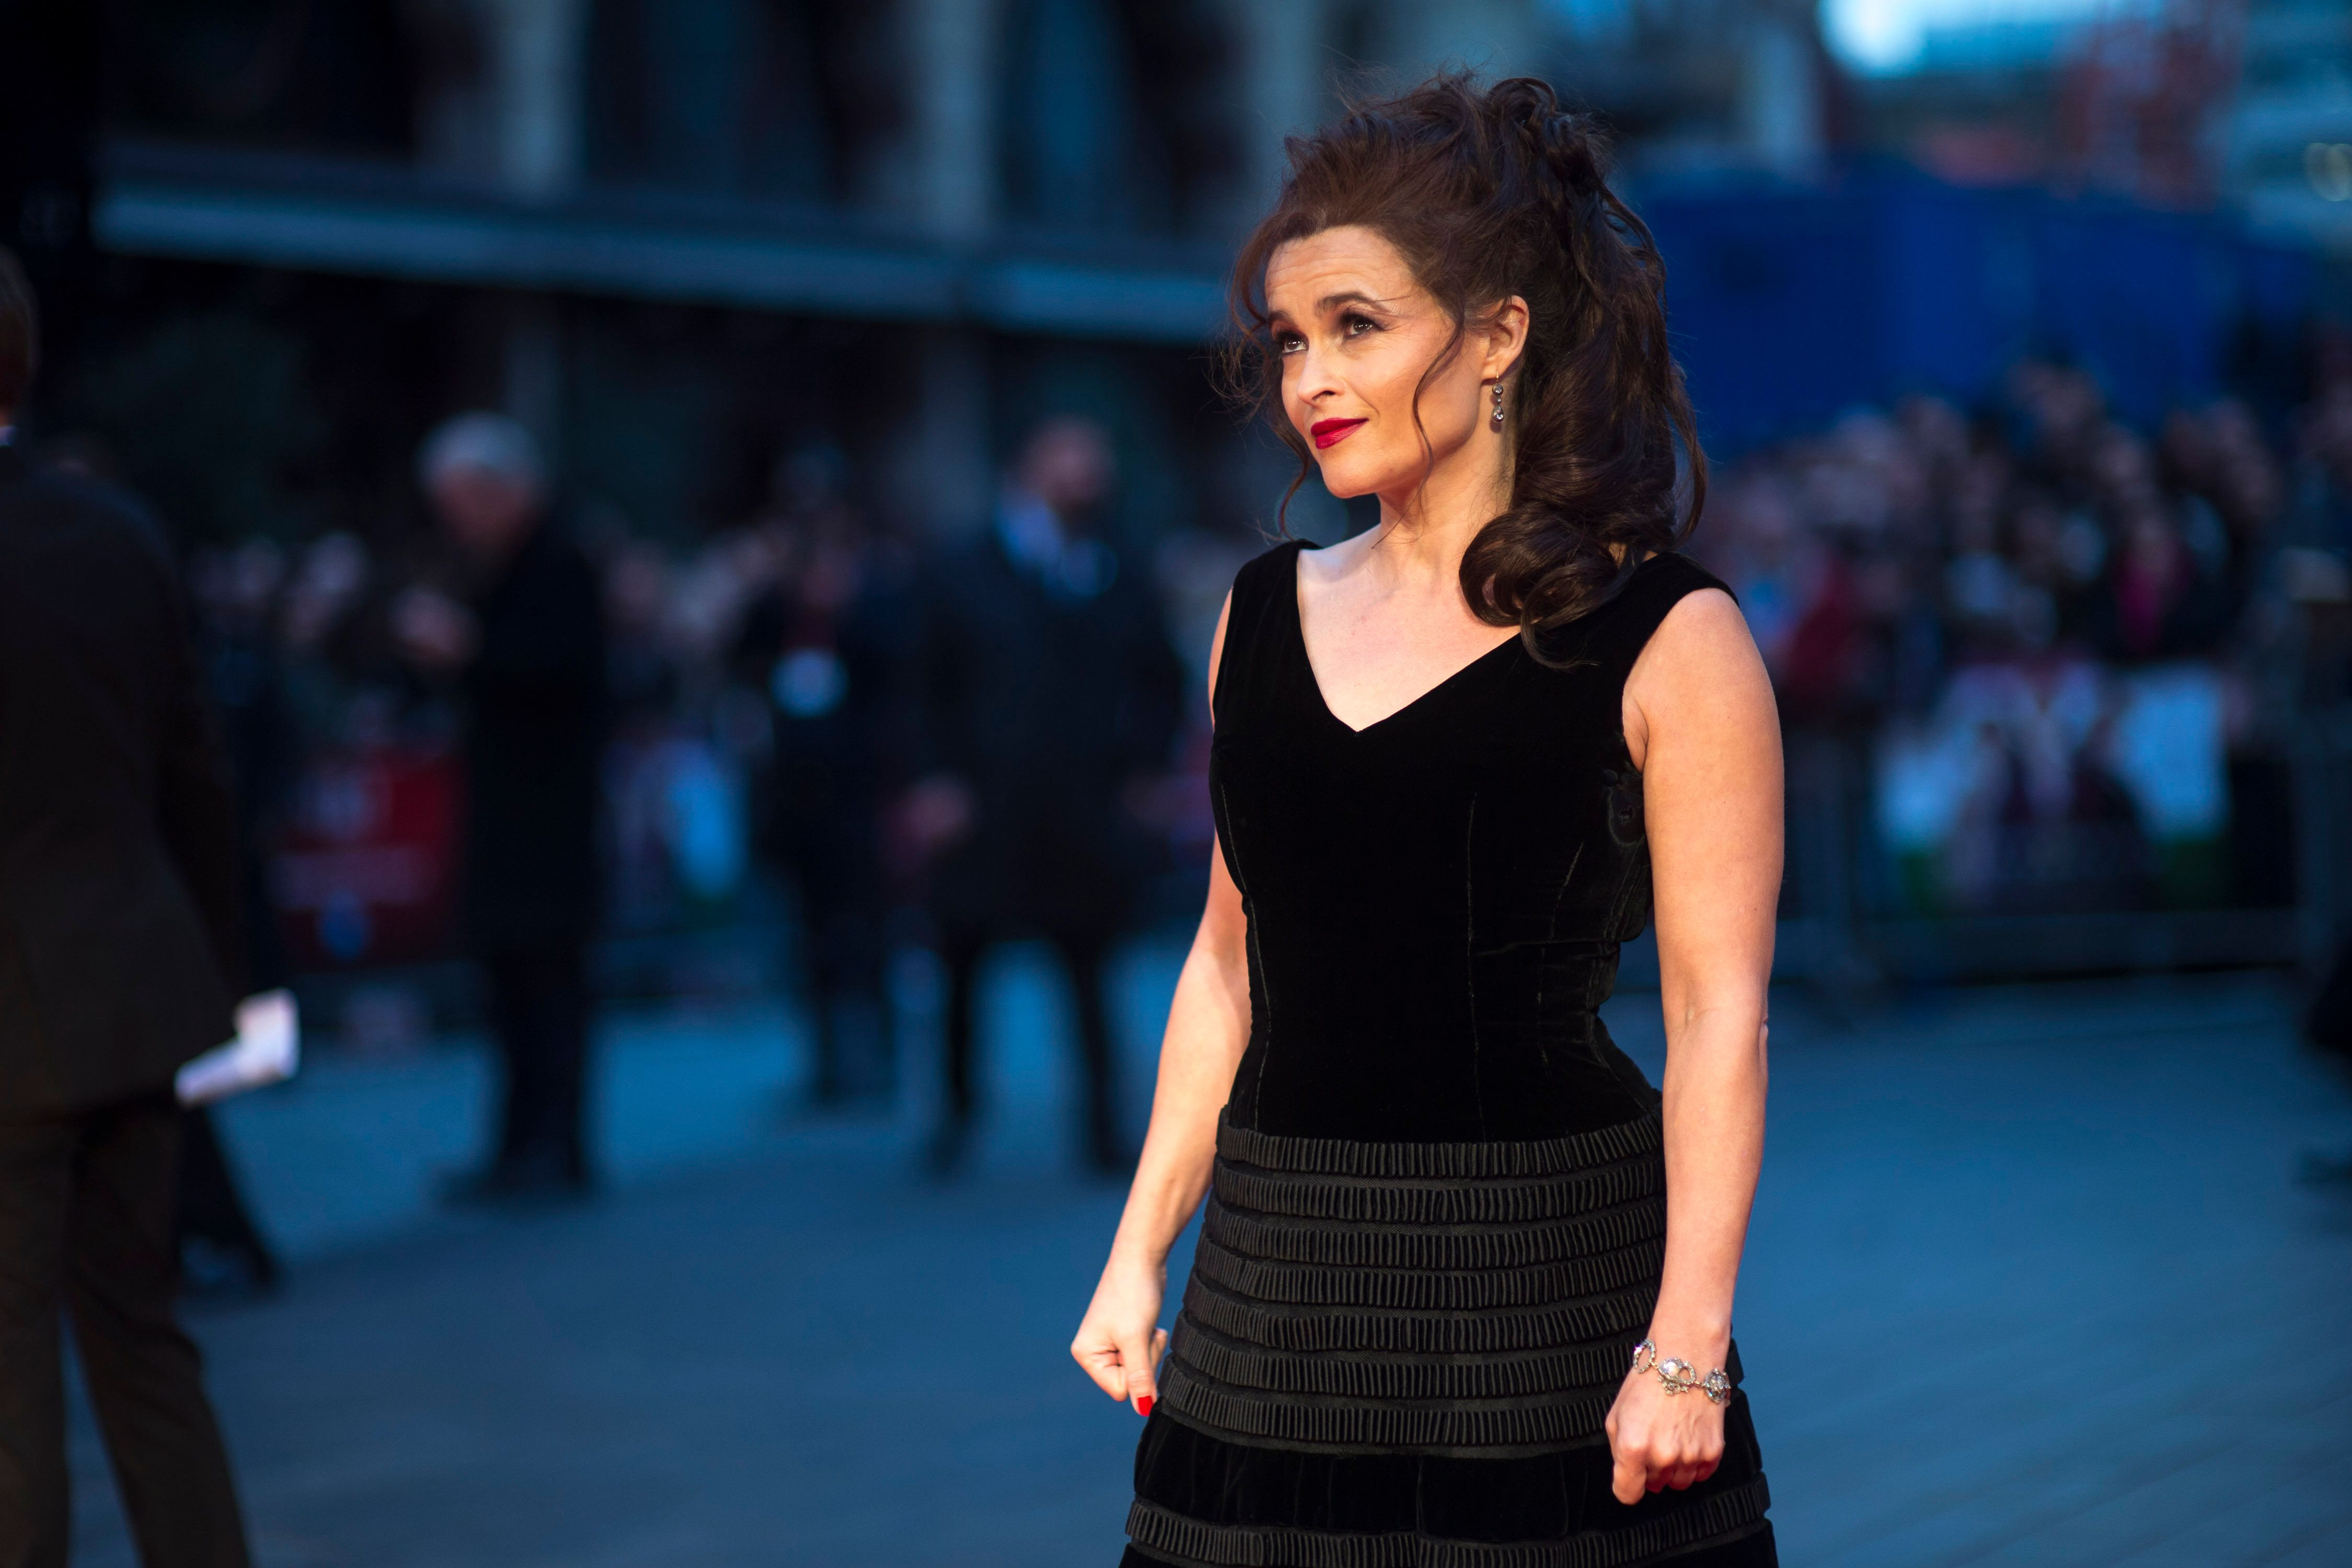 Helena Bonham Carter to join The Crown as Princess Margaret